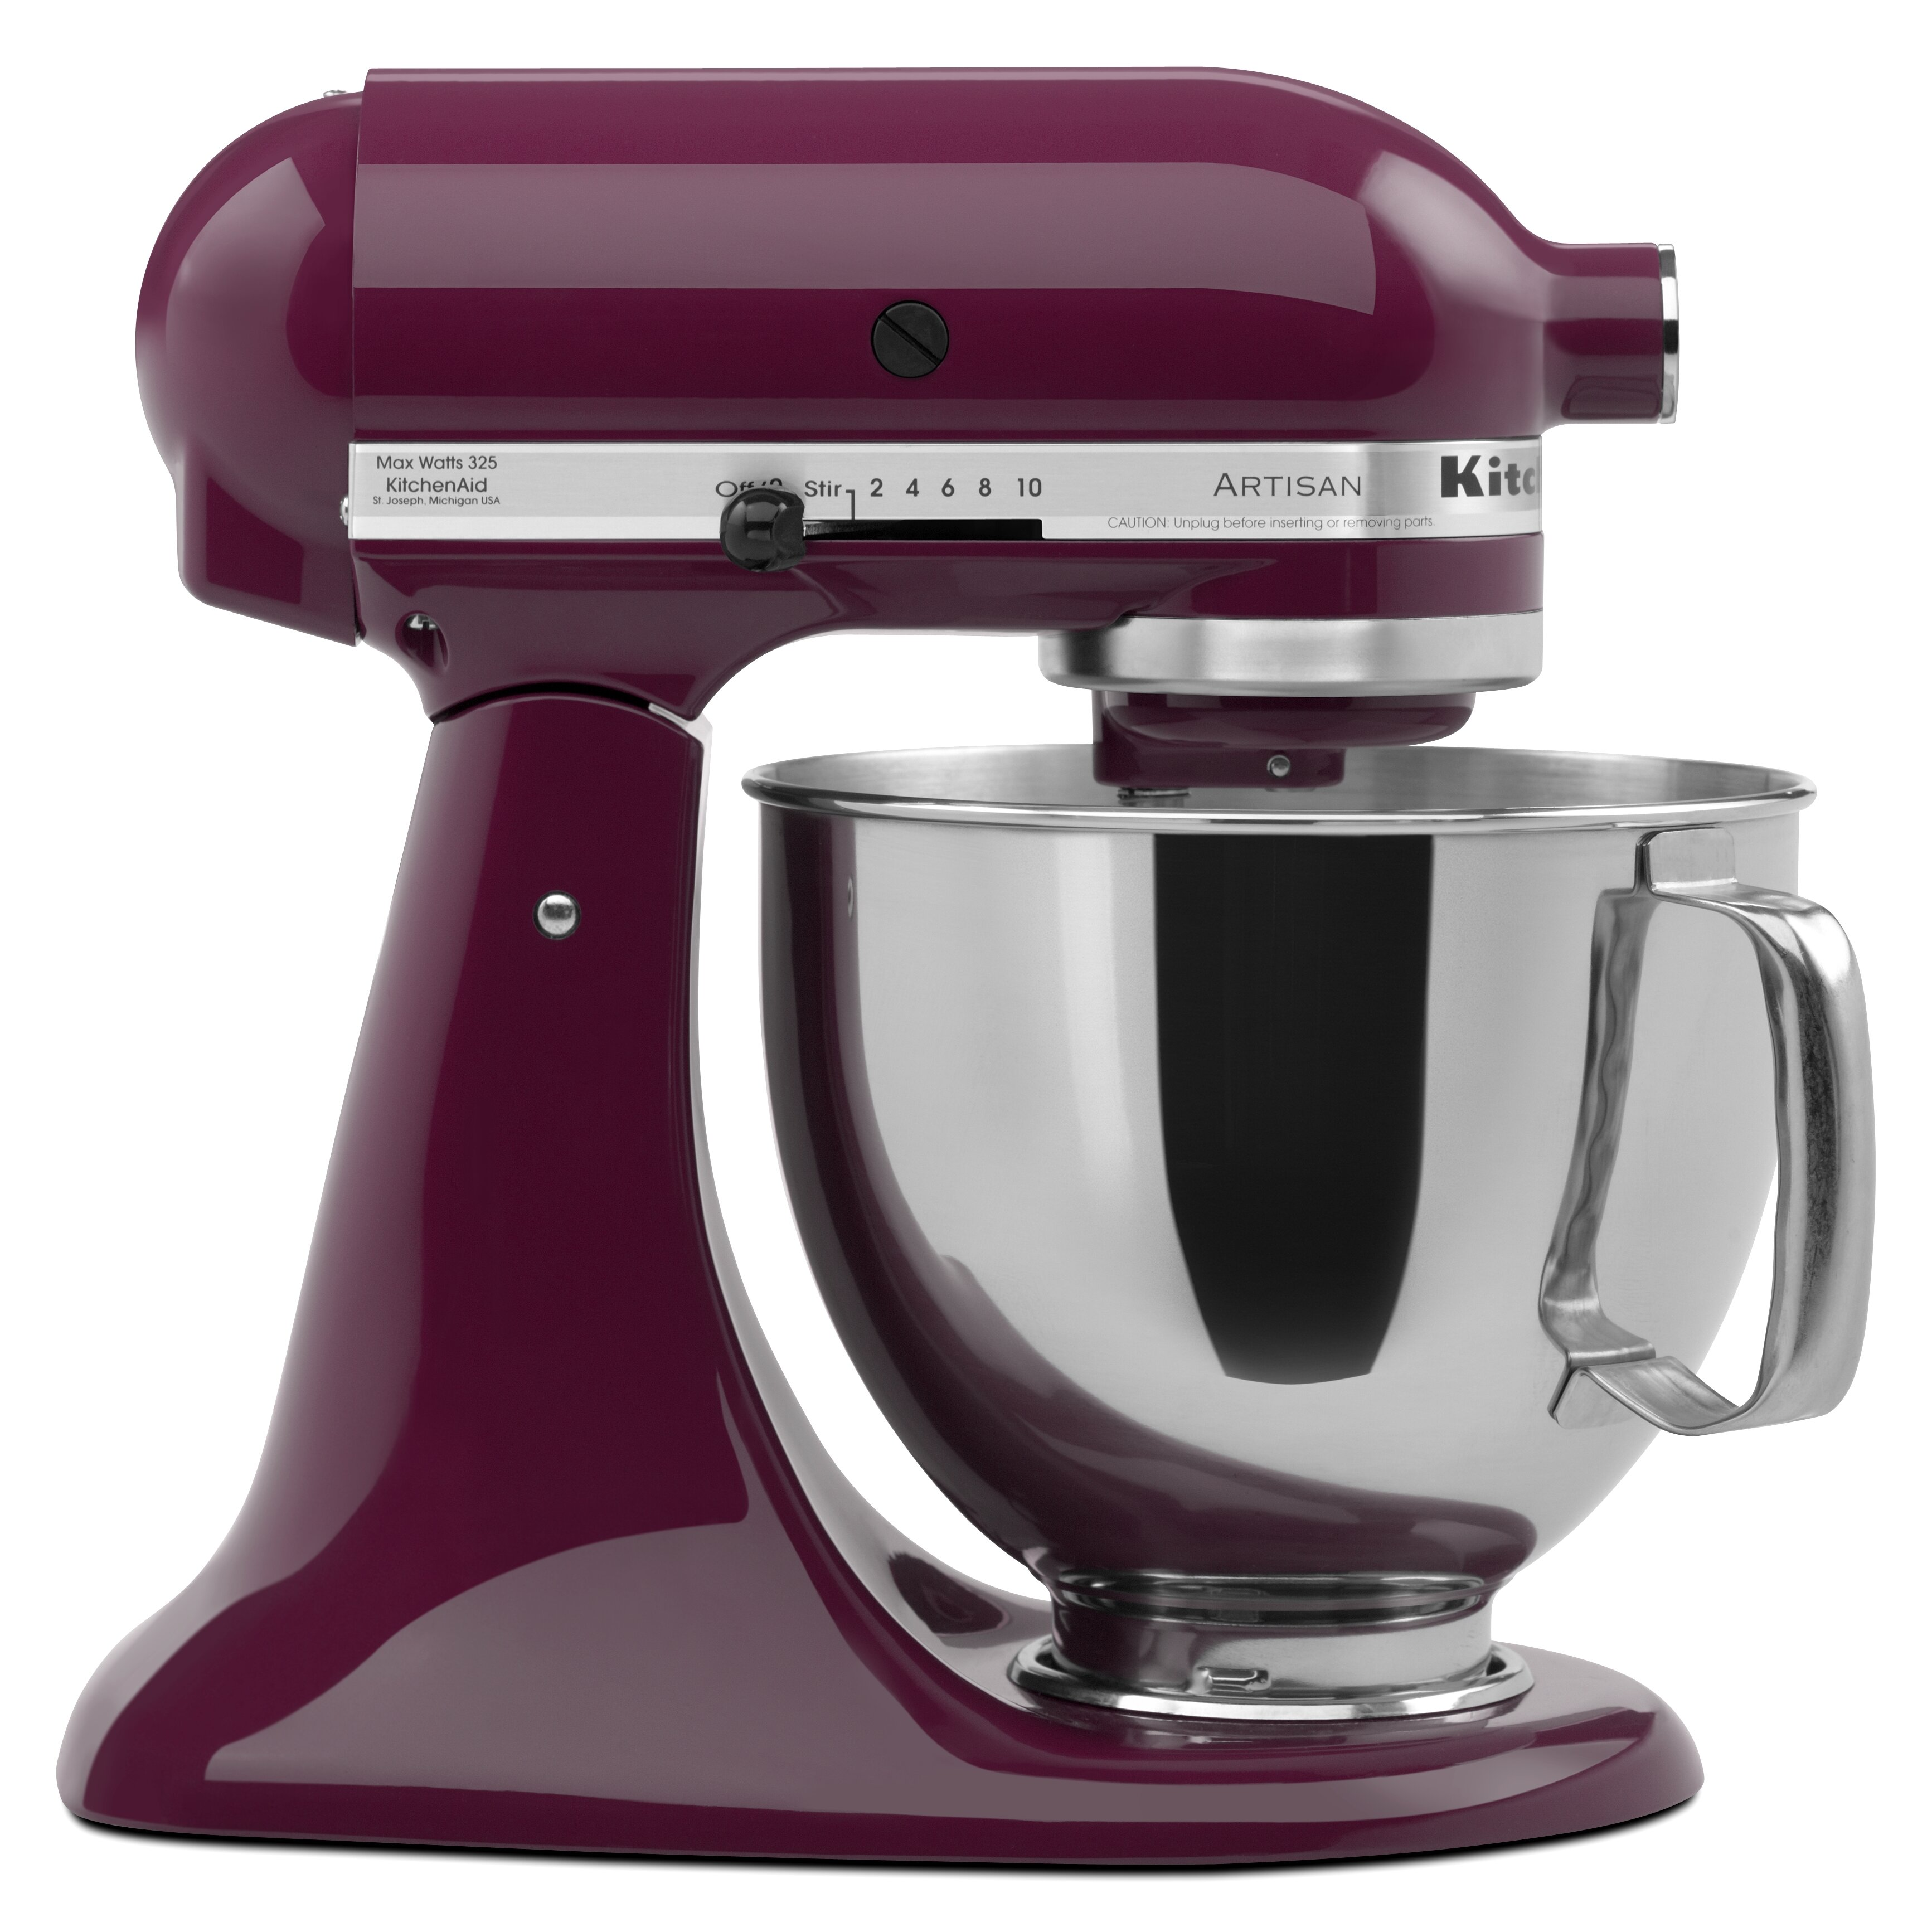 Kitchenaid Kitchenaid Artisan Series 5 Qt Stand Mixer